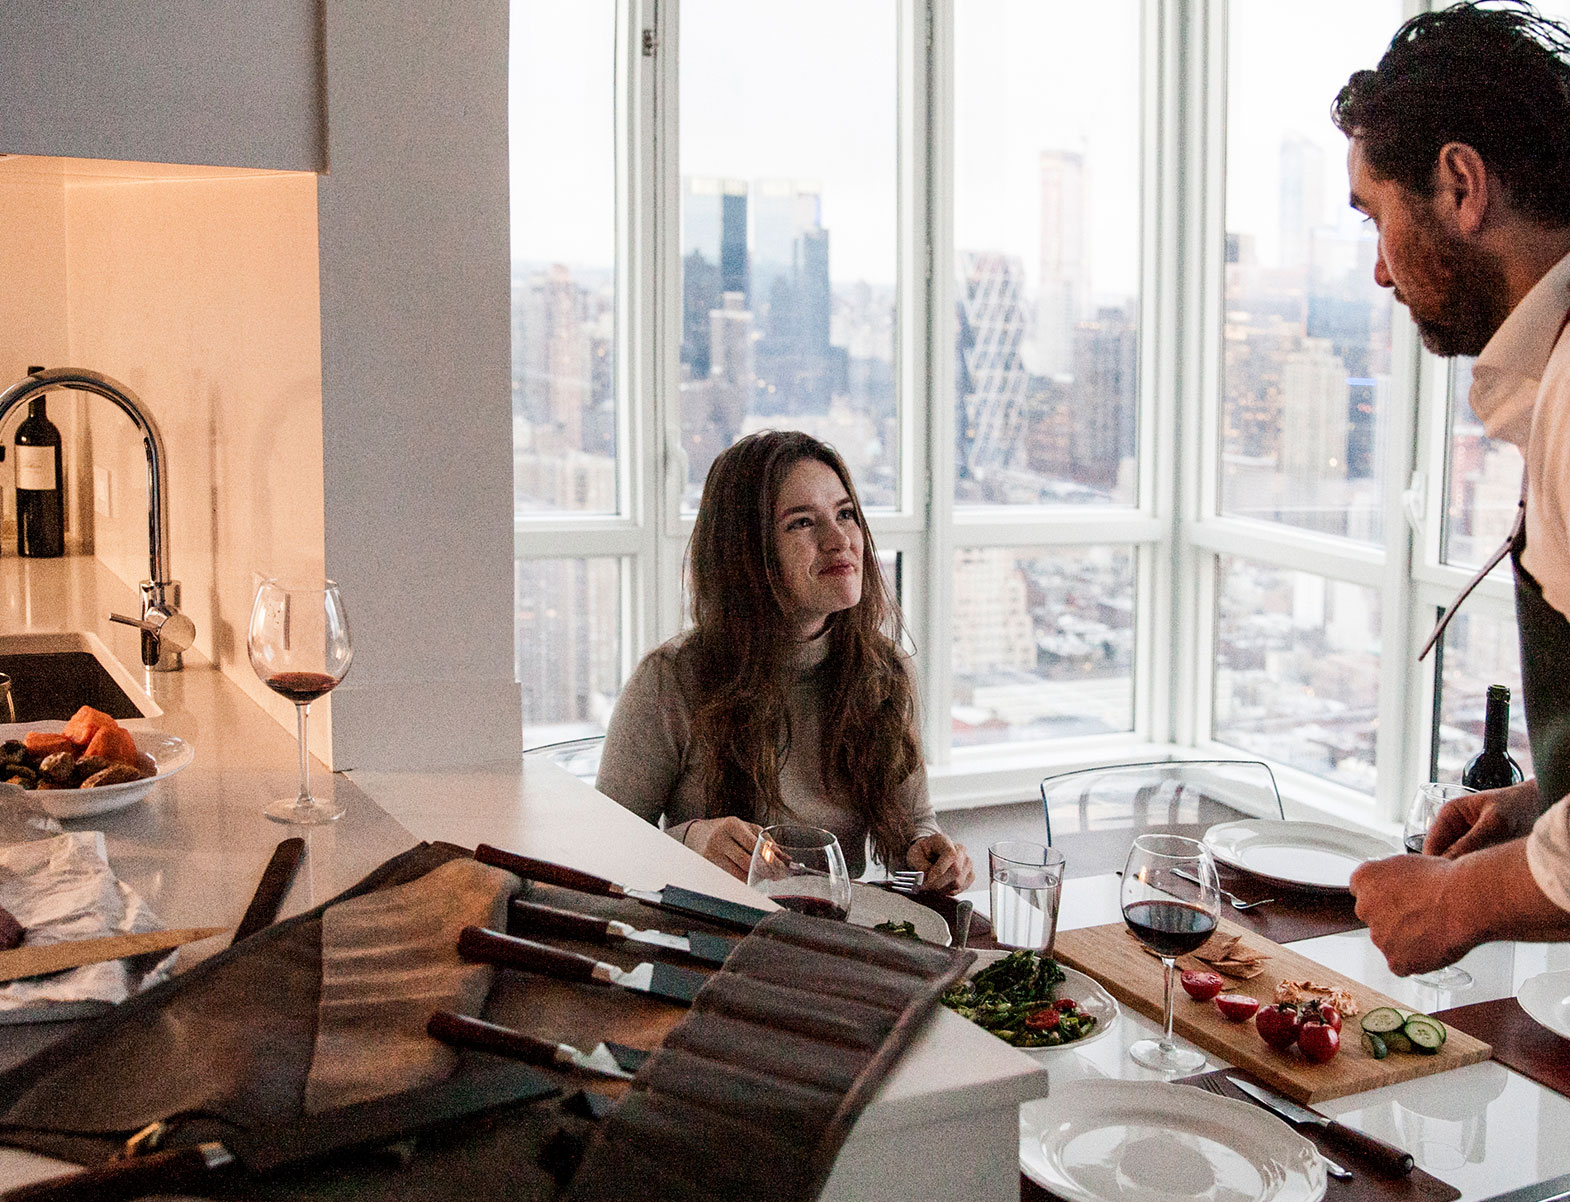 WITLOFT Penthouse in NYC Story romantic dinner for two